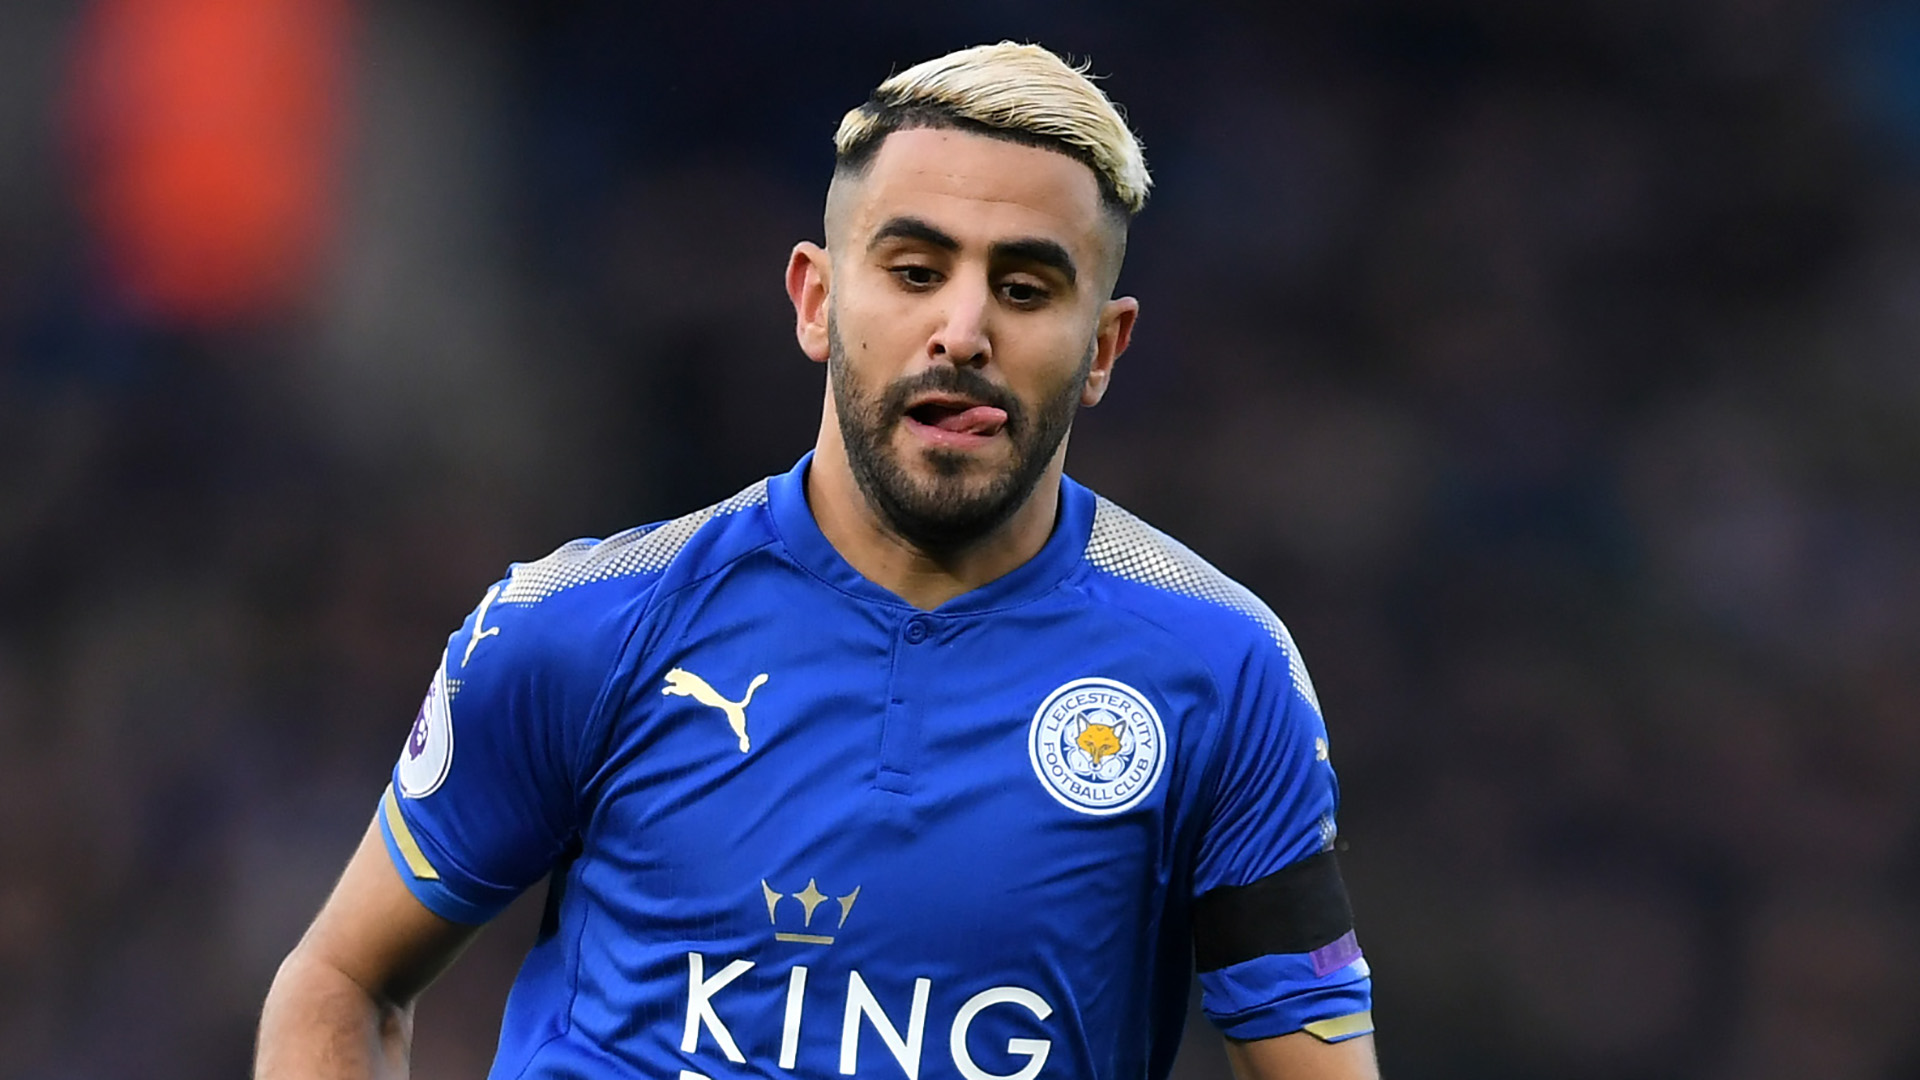 Image result for Manchester City agree £60m deal to sign African star who plays for Leicester City